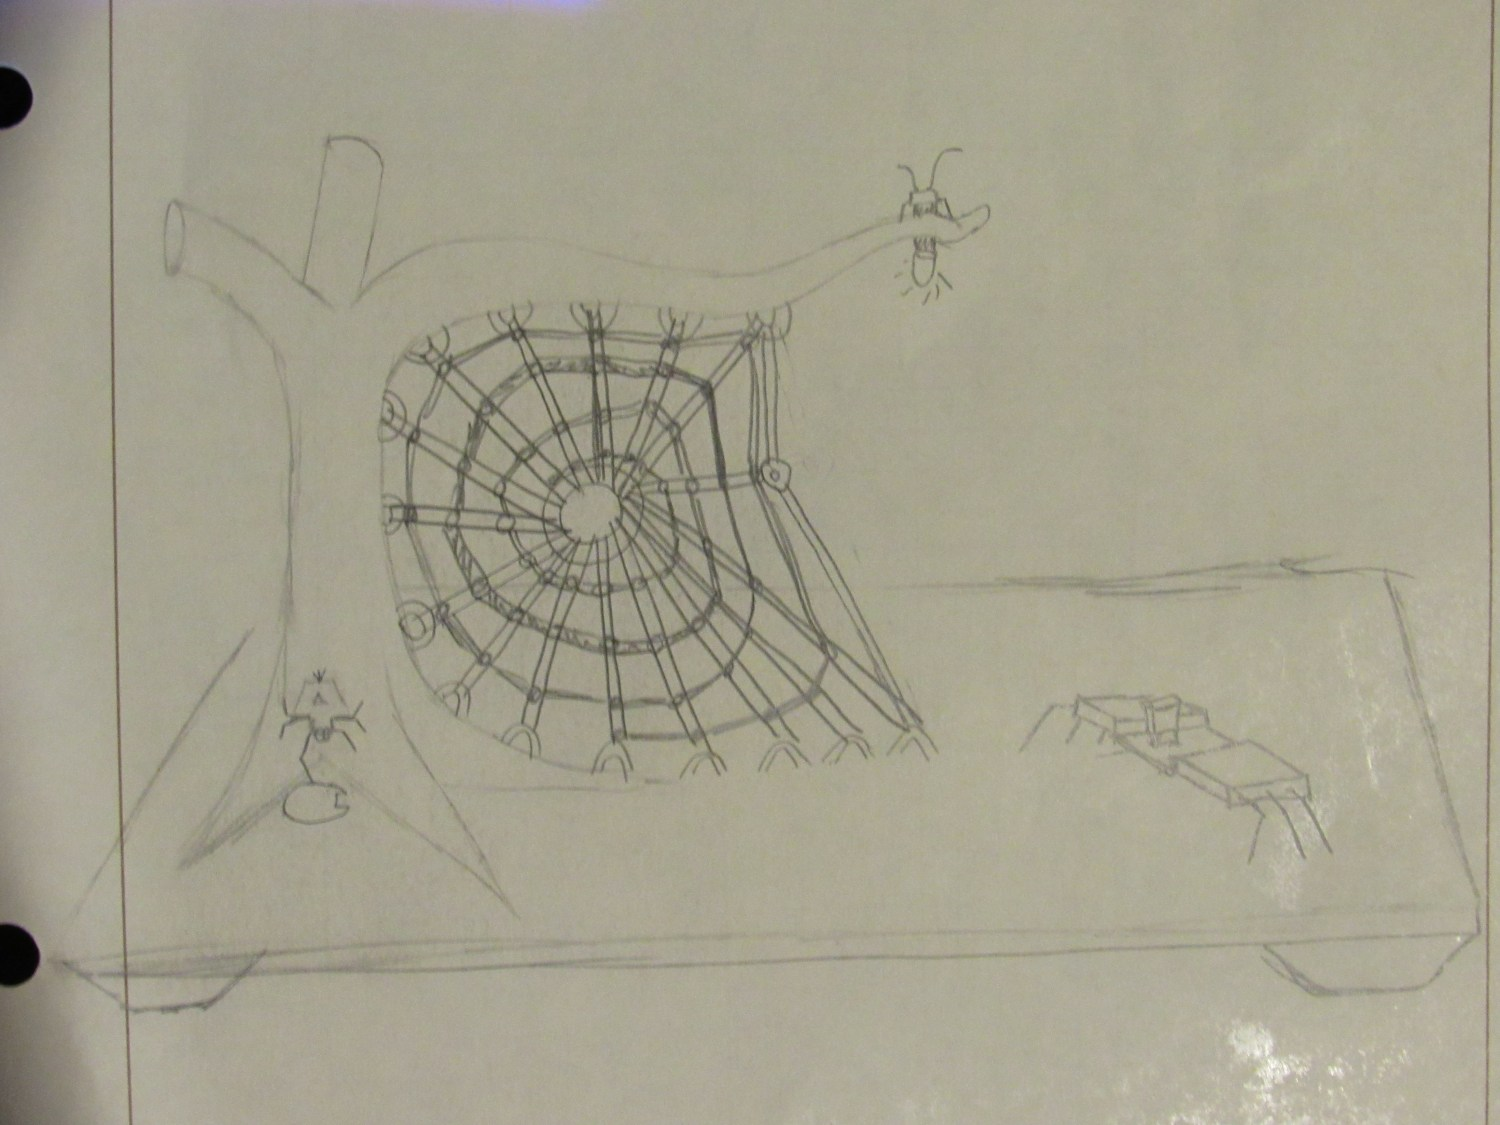 Figure 6; Initial Design Idea for placement of spiders and firefly.